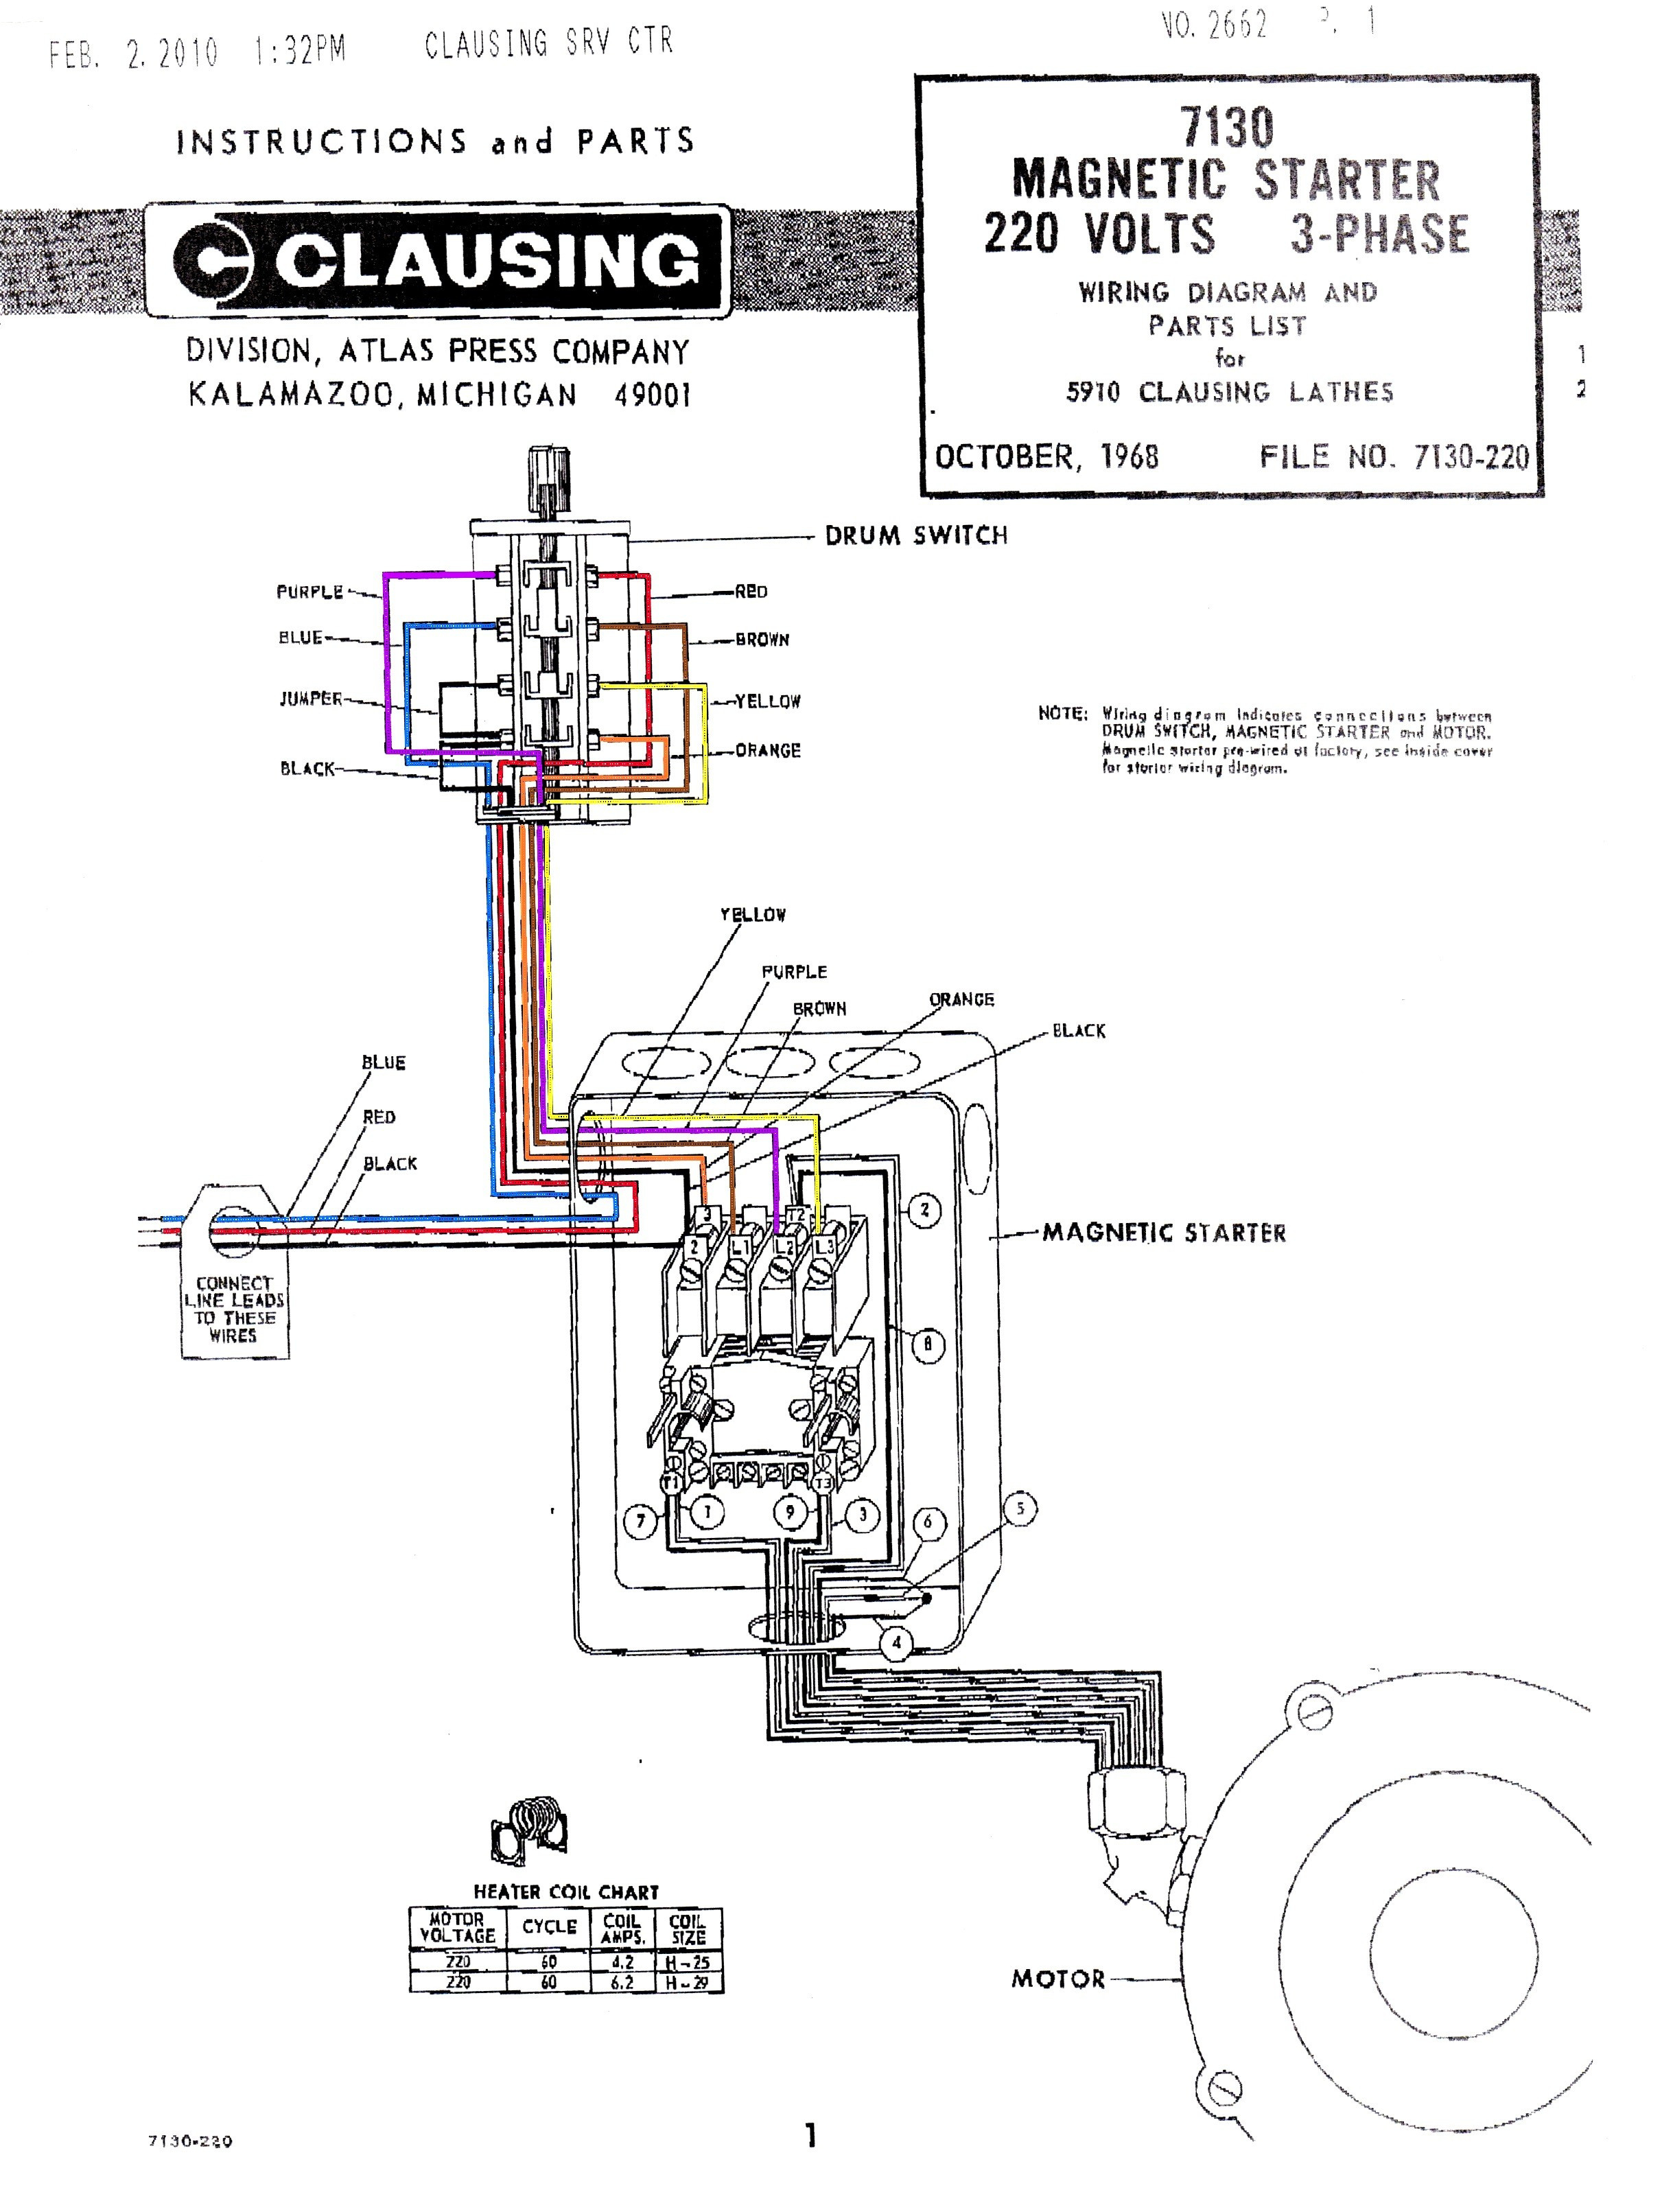 motor wiring diagrams free download wiring diagram schematic electric motor wiring diagram free download wiring diagram schematic [ 2438 x 3223 Pixel ]